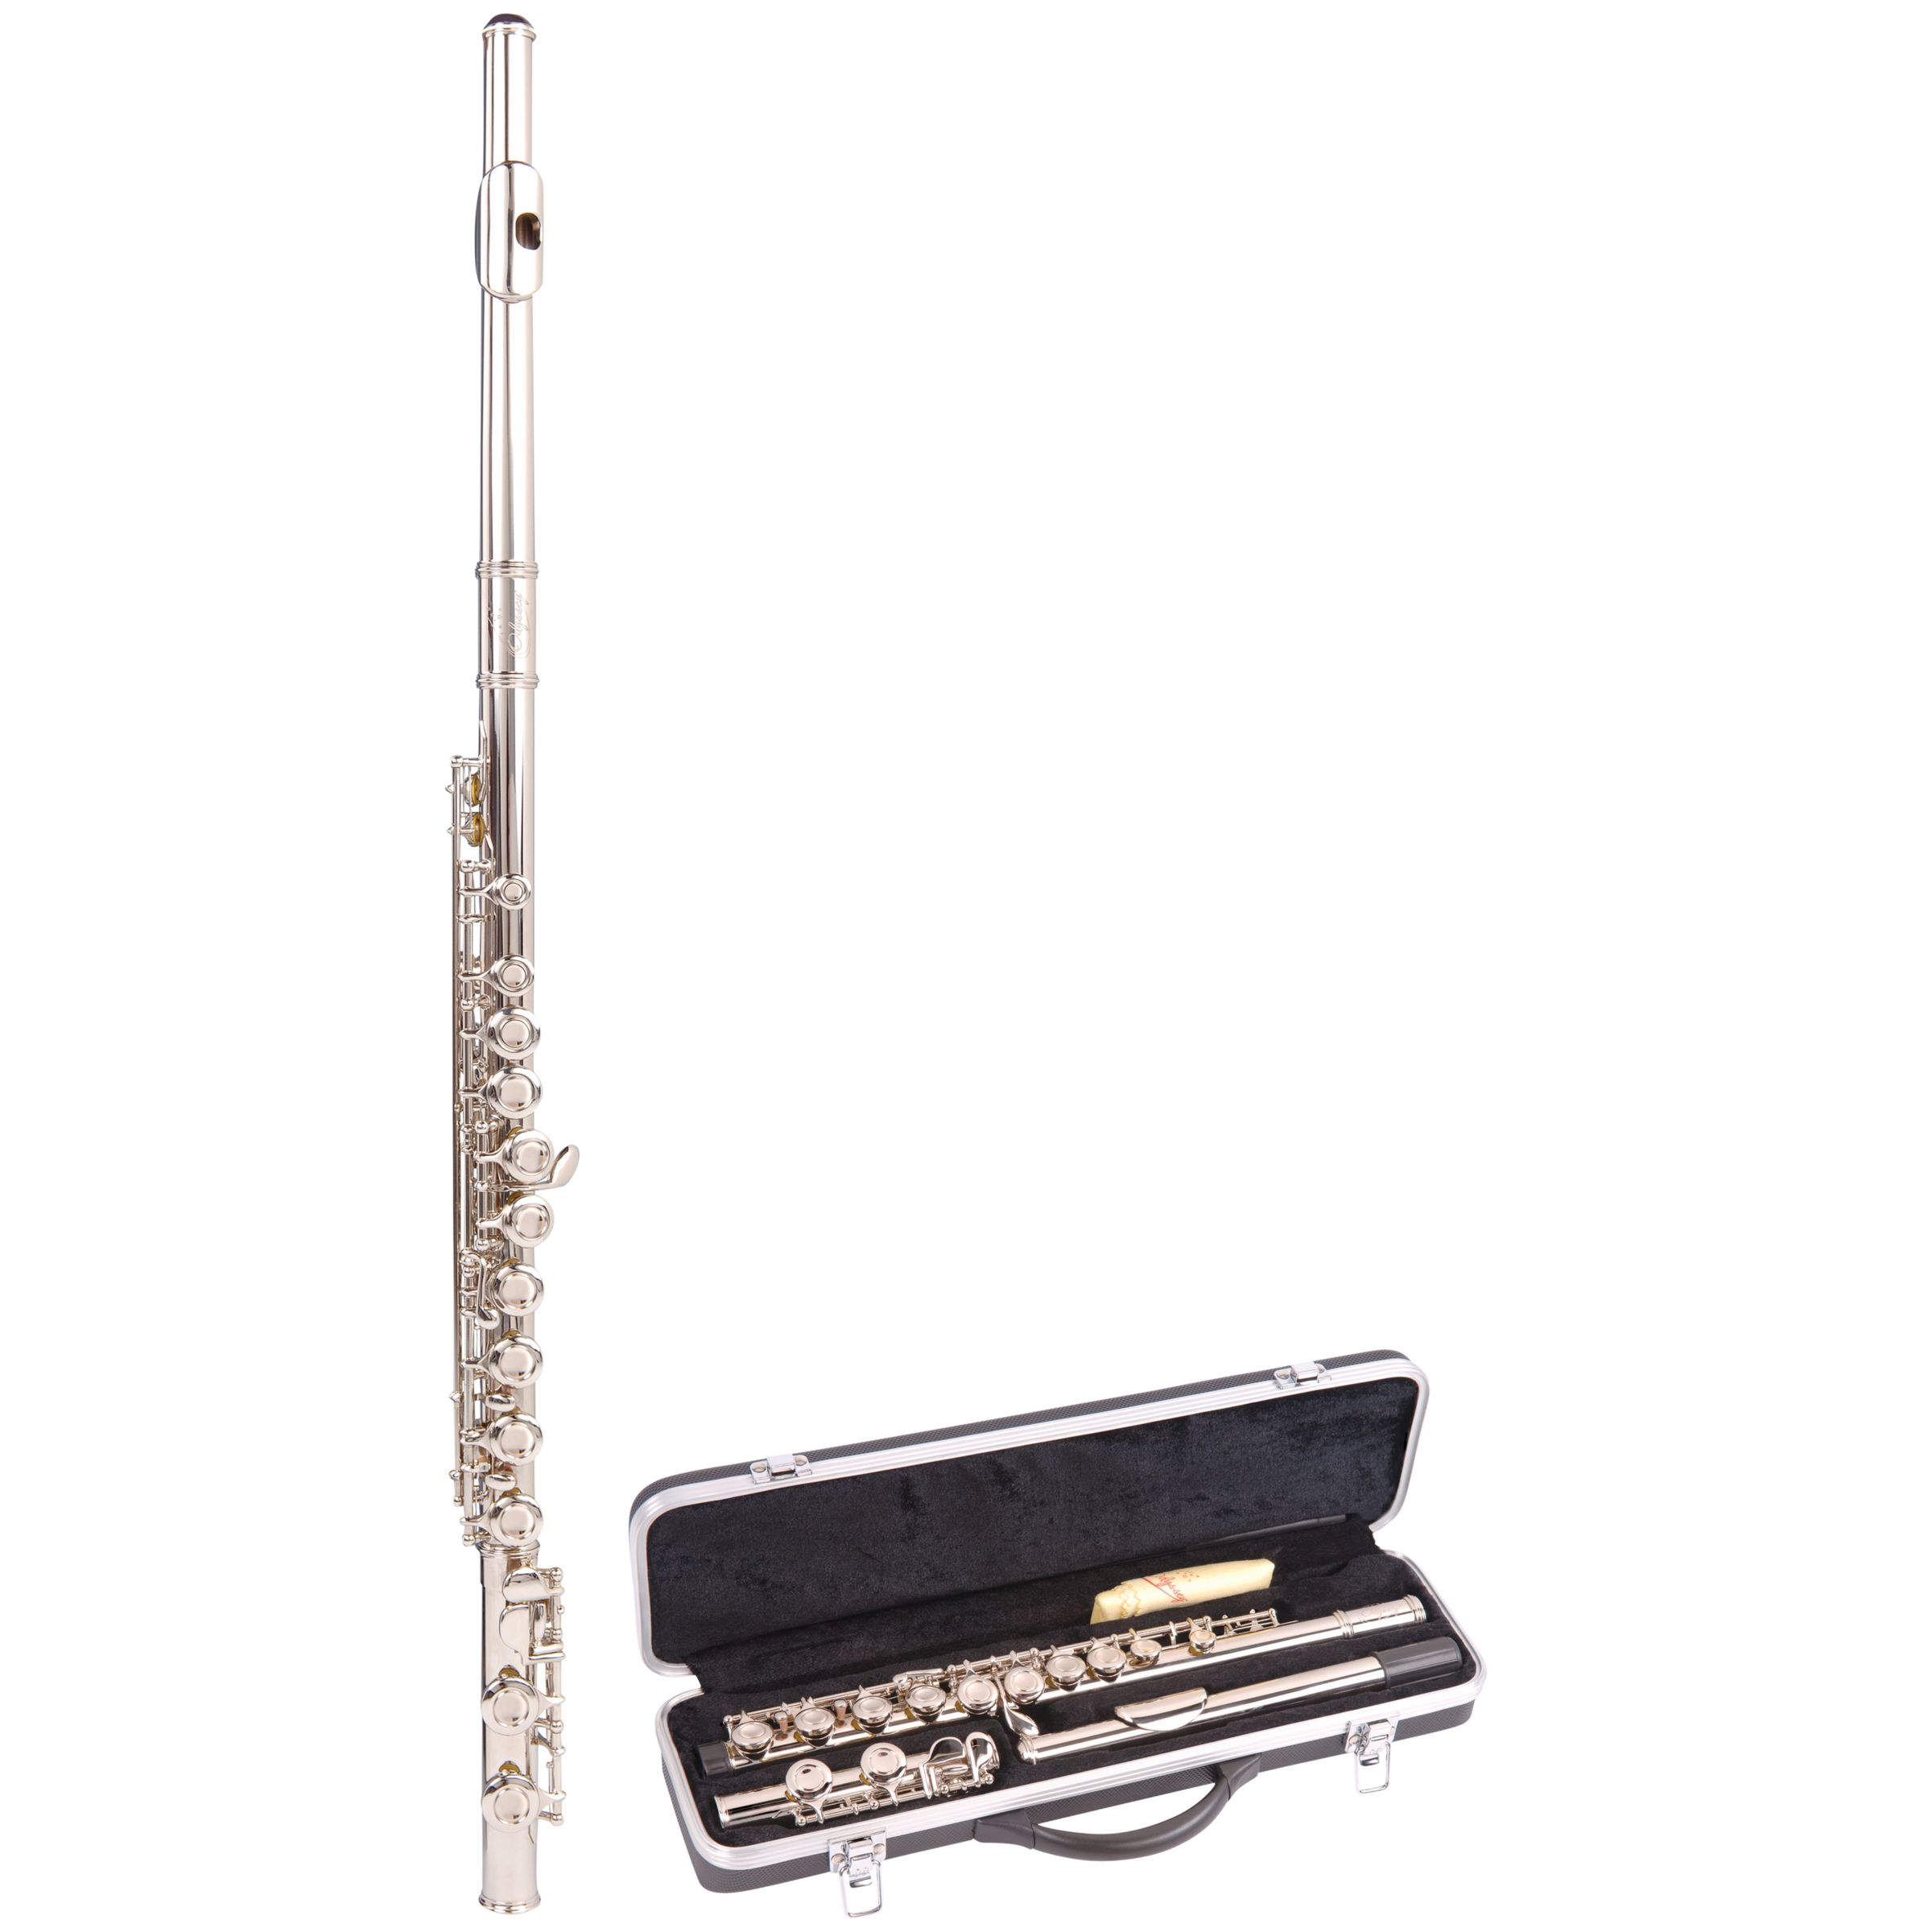 Odyssey Odyssey Debut Flute with Case, Silver